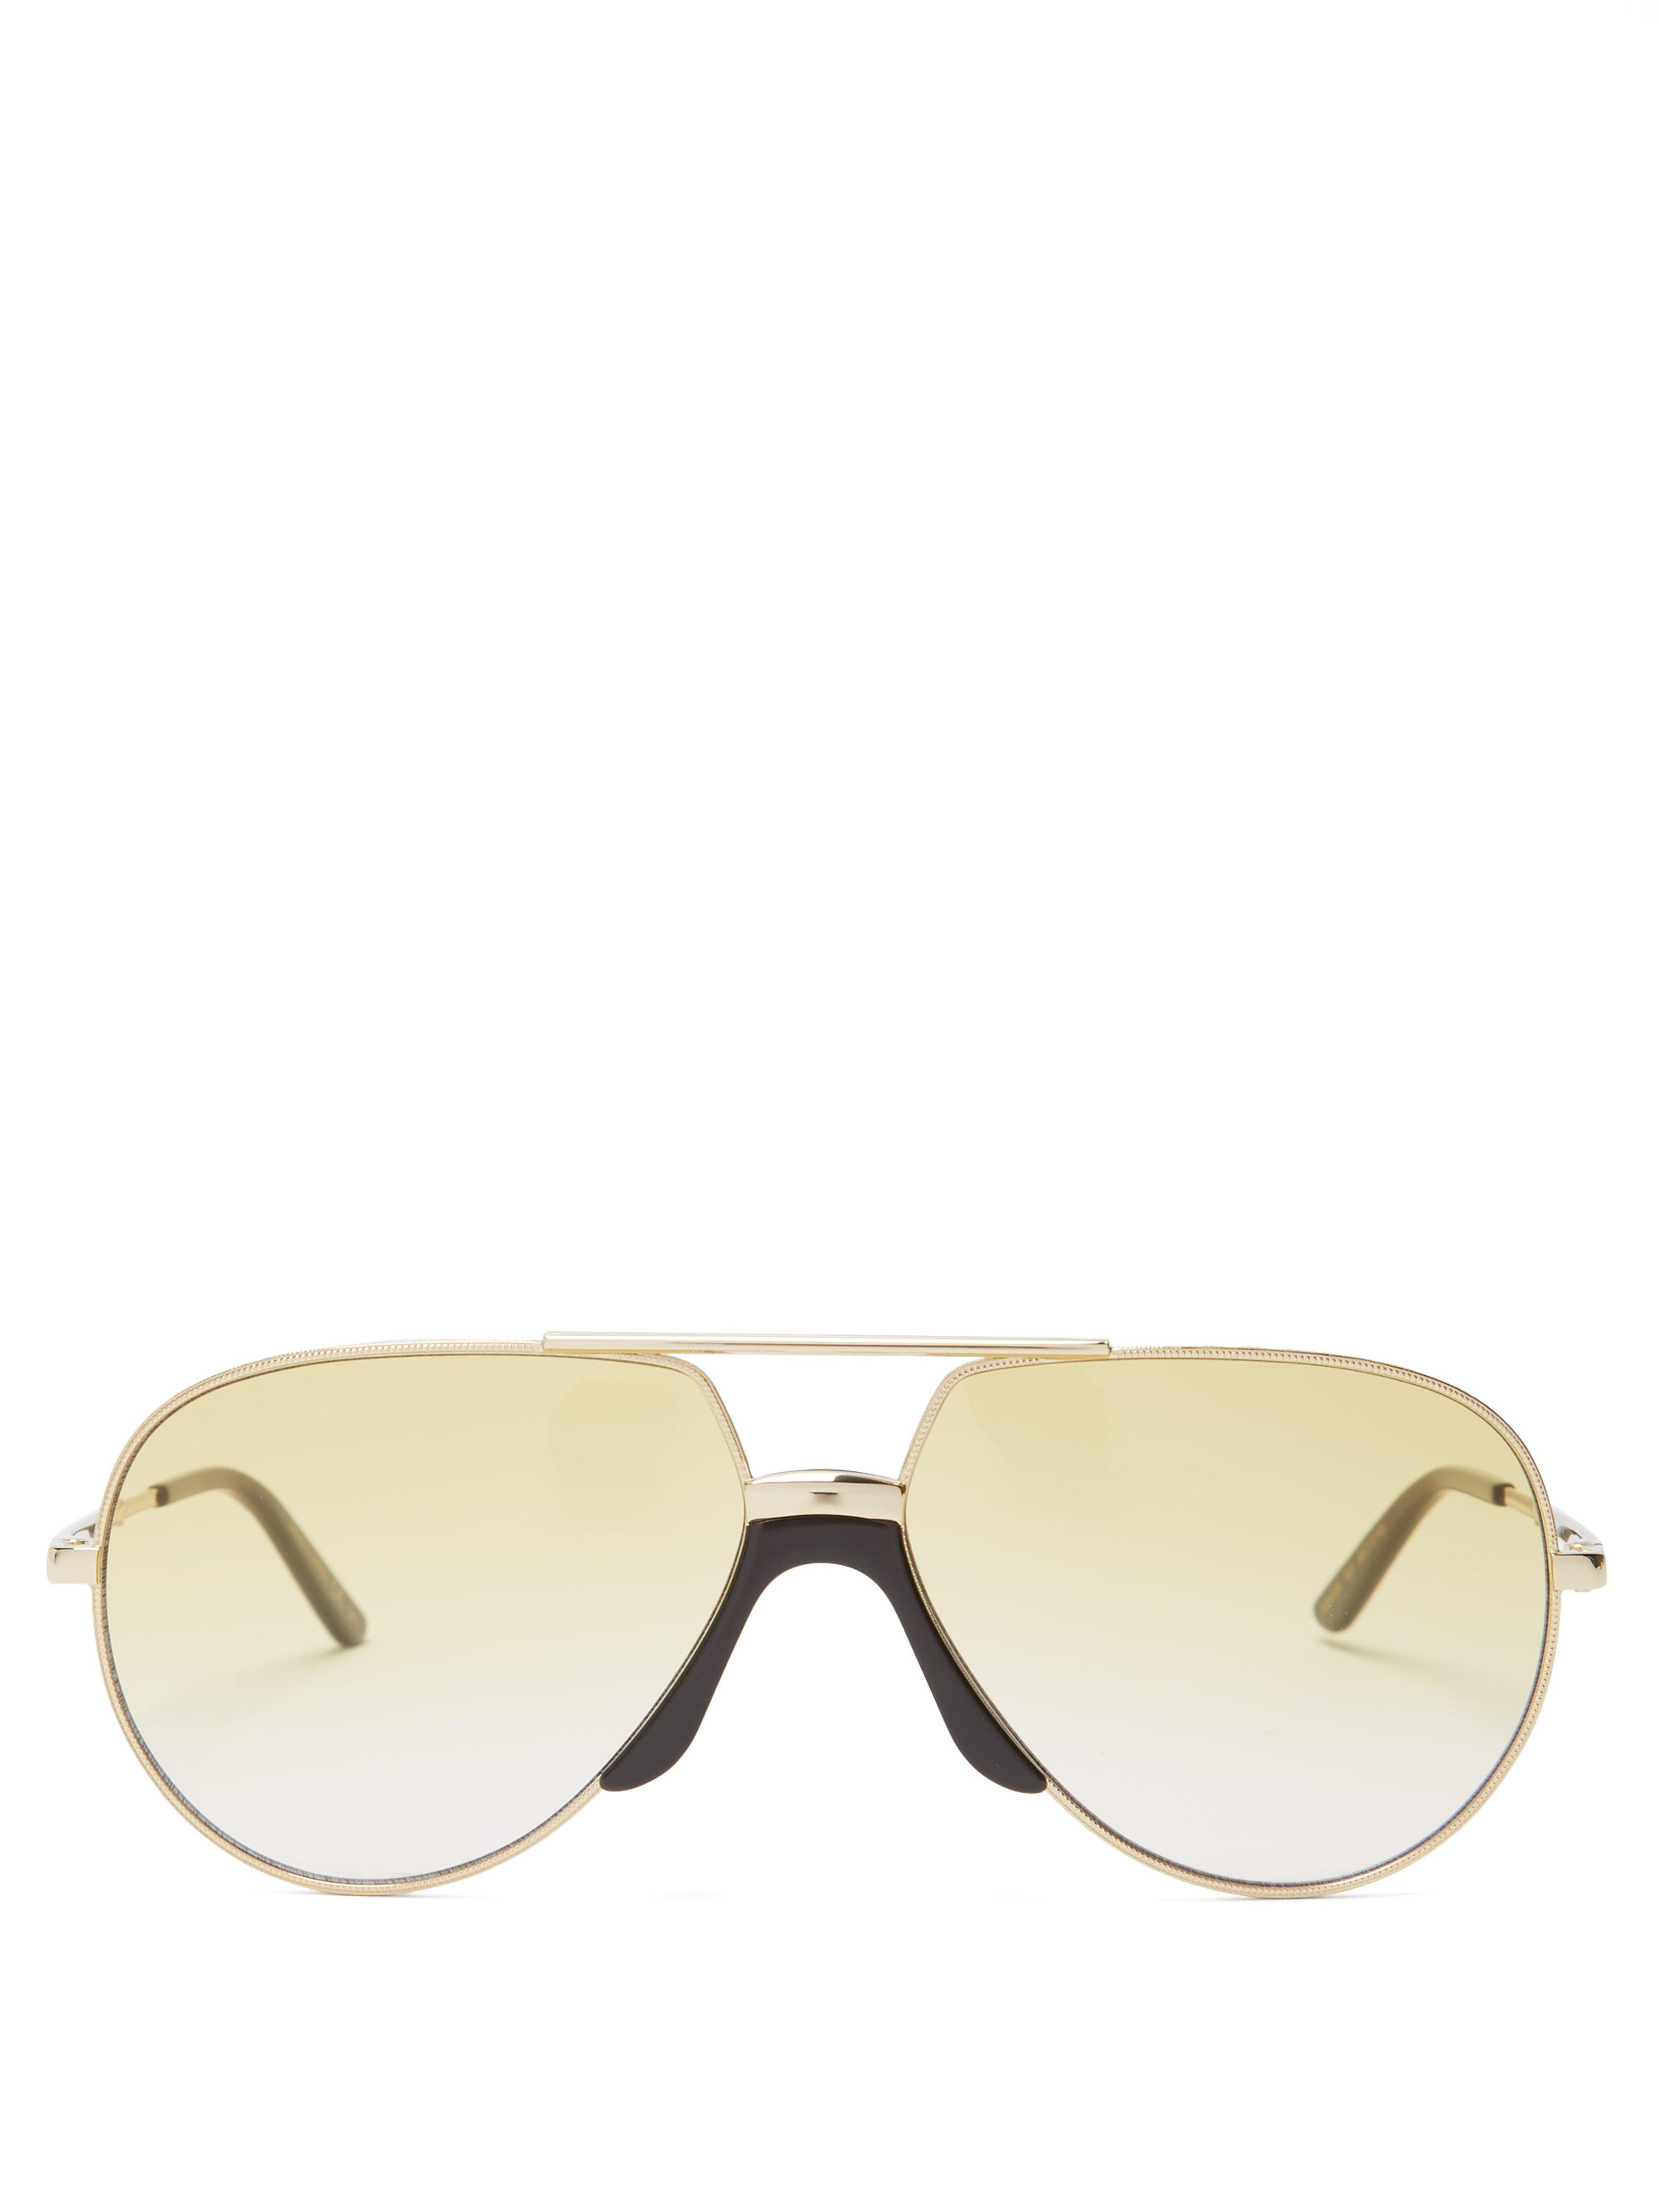 109f1a0caad Gucci Aviator Frame Metal Sunglasses in Metallic for Men - Lyst